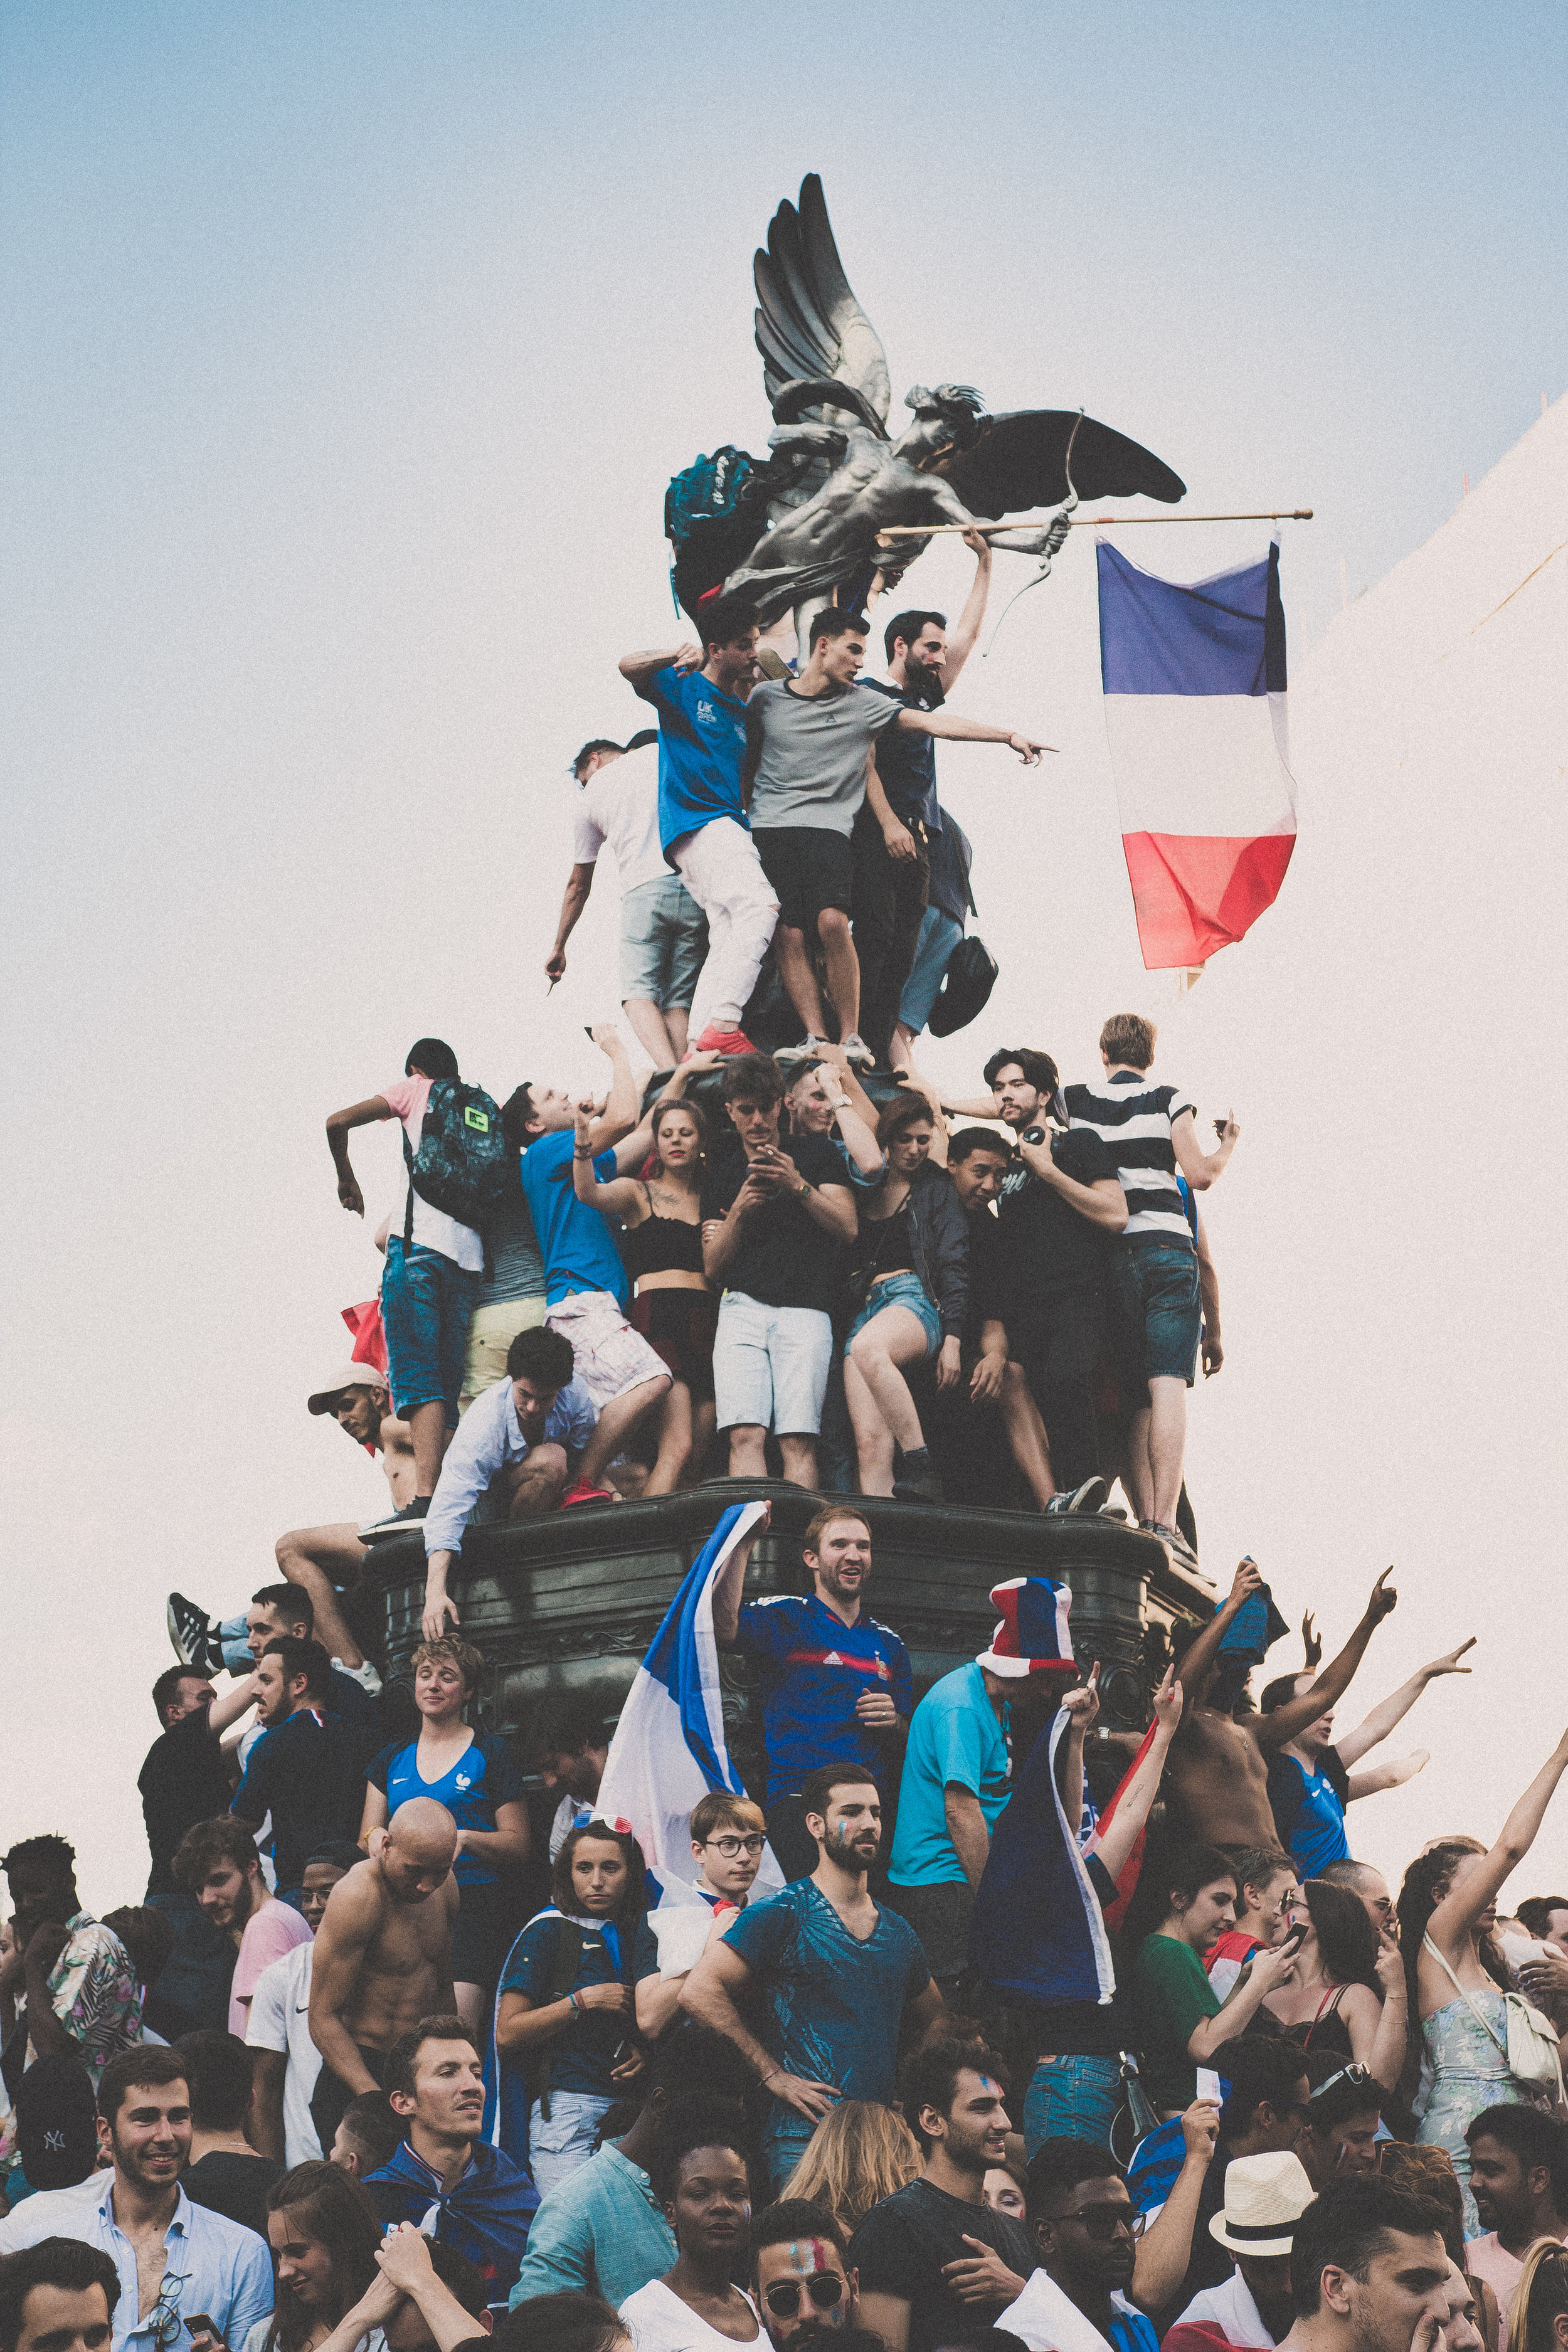 French fans celebrating their World Cup win on the London streets in 2018.